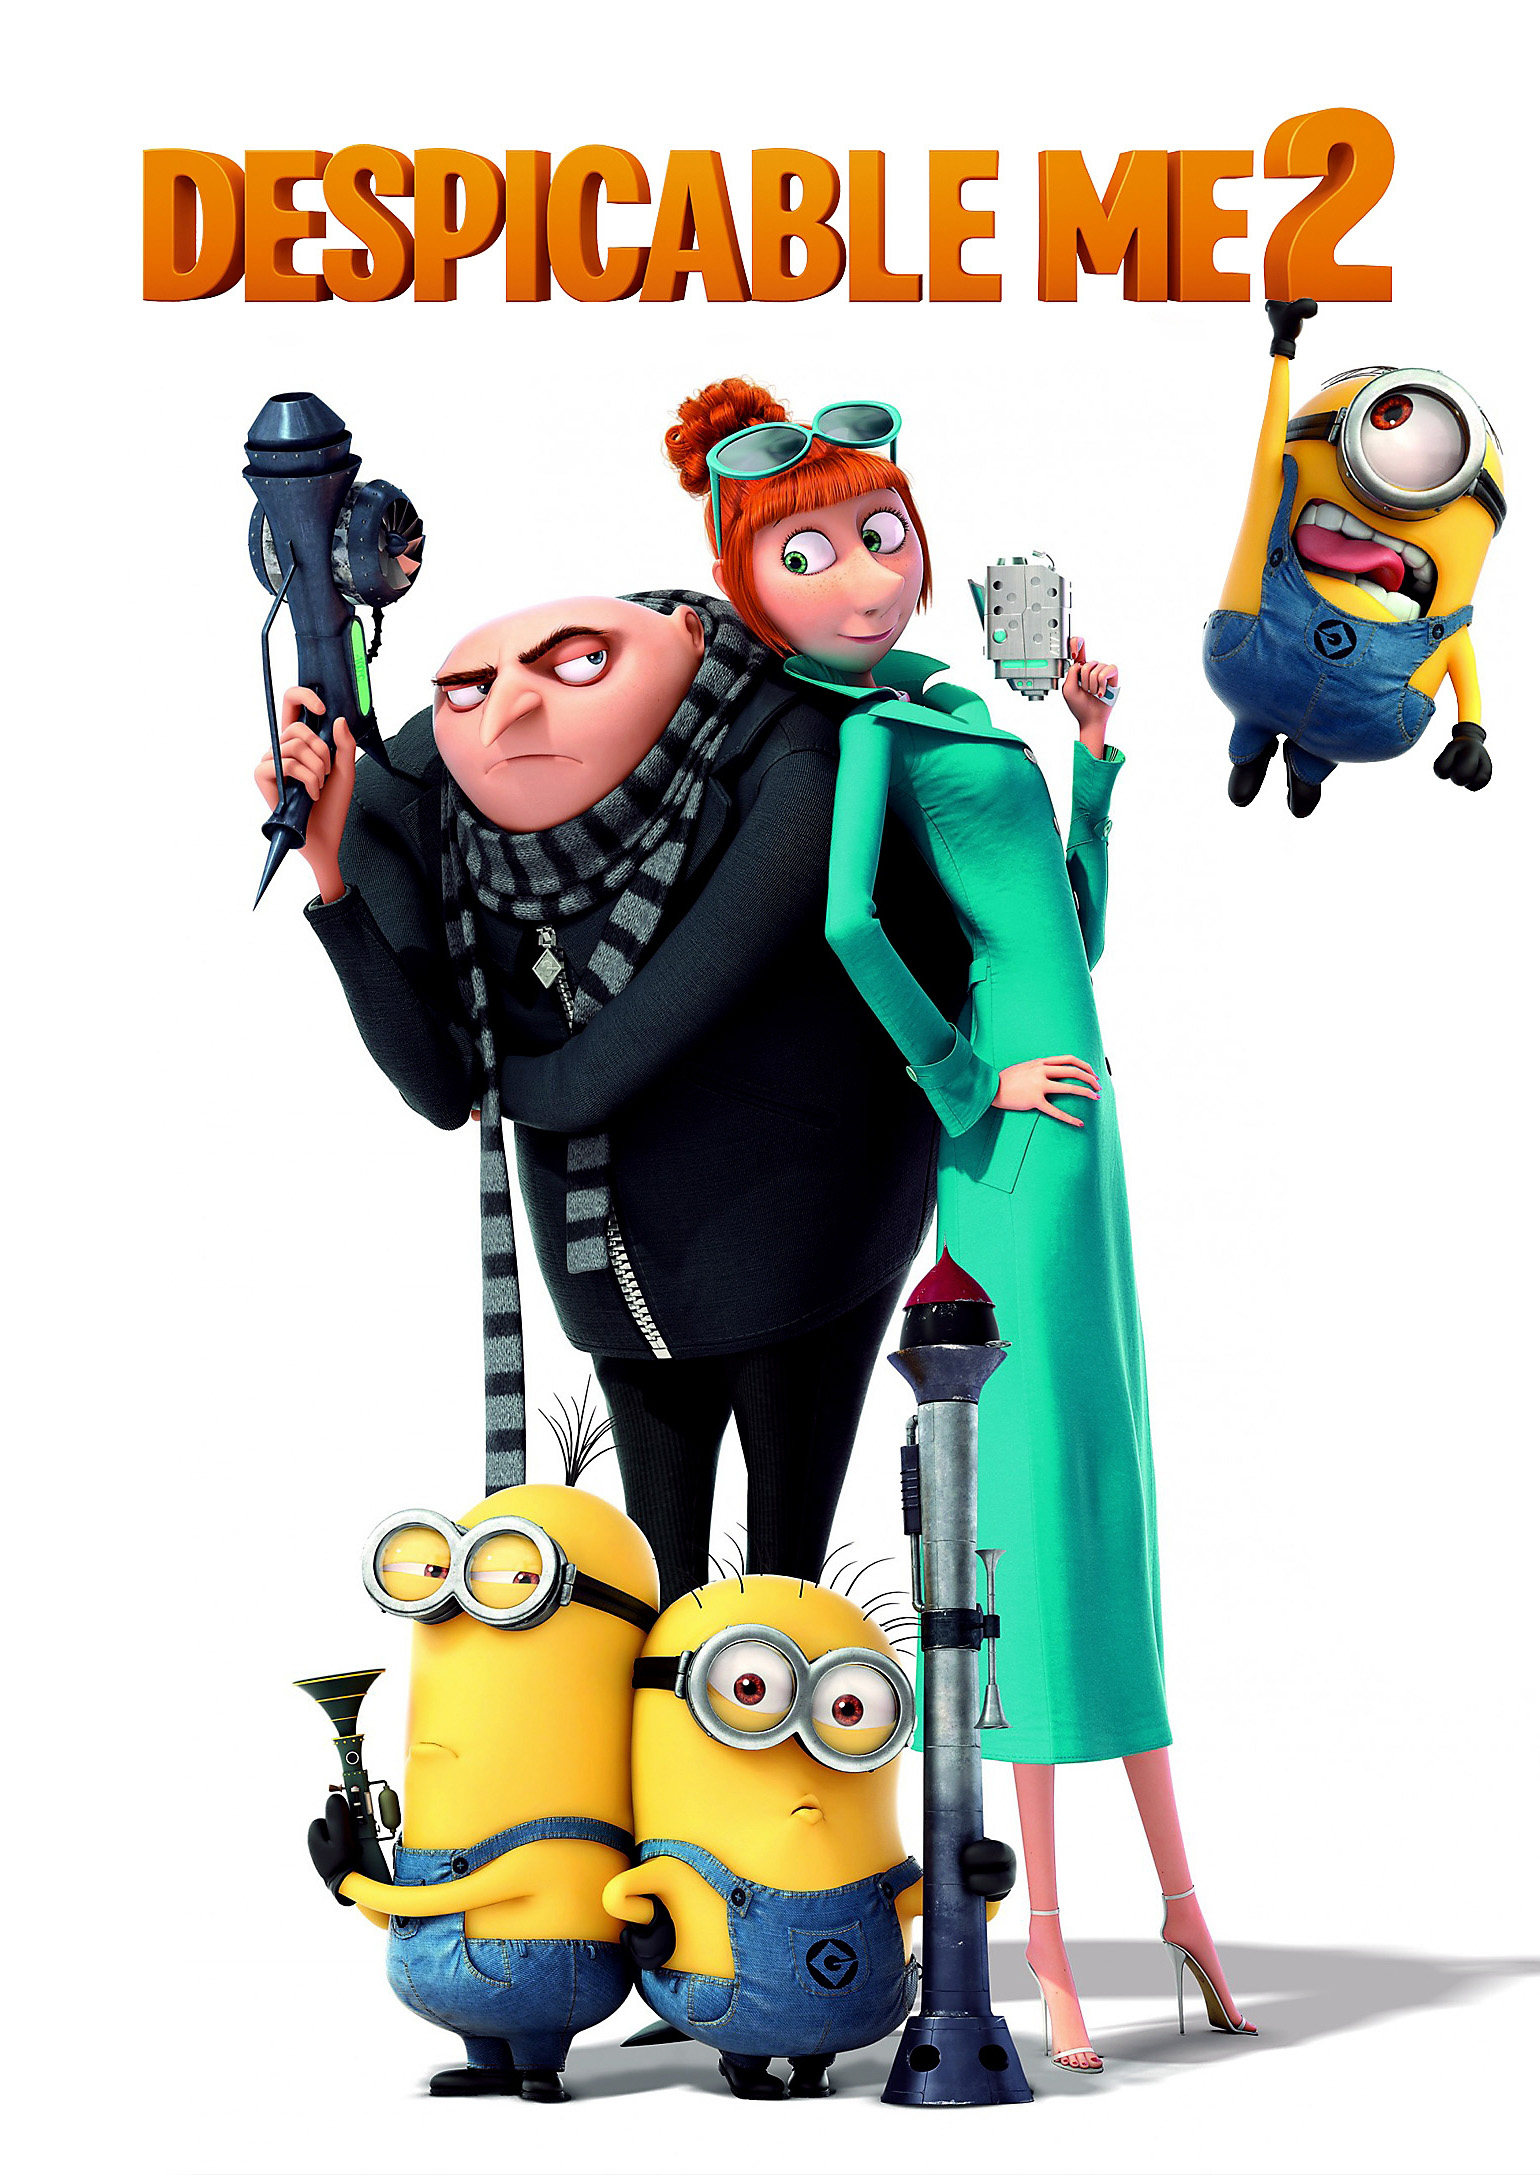 http://img5.downloadha.com/hosein/Animation/September%202013/Despicable-me-2-dvd-cover-large.jpg